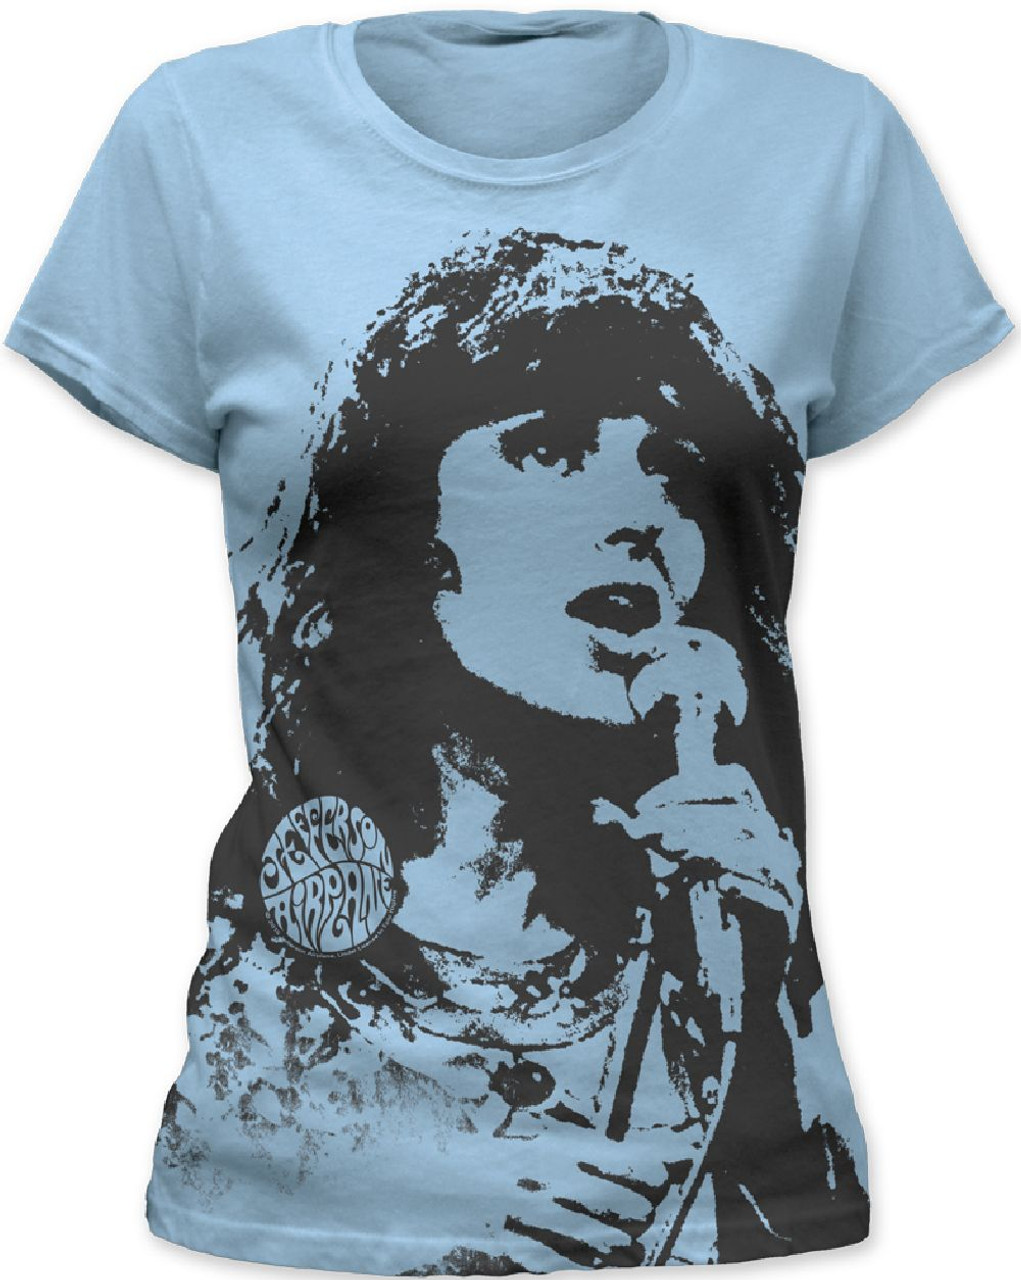 Legendary Grace Slick T-Shirt XmXBuW6Nkf